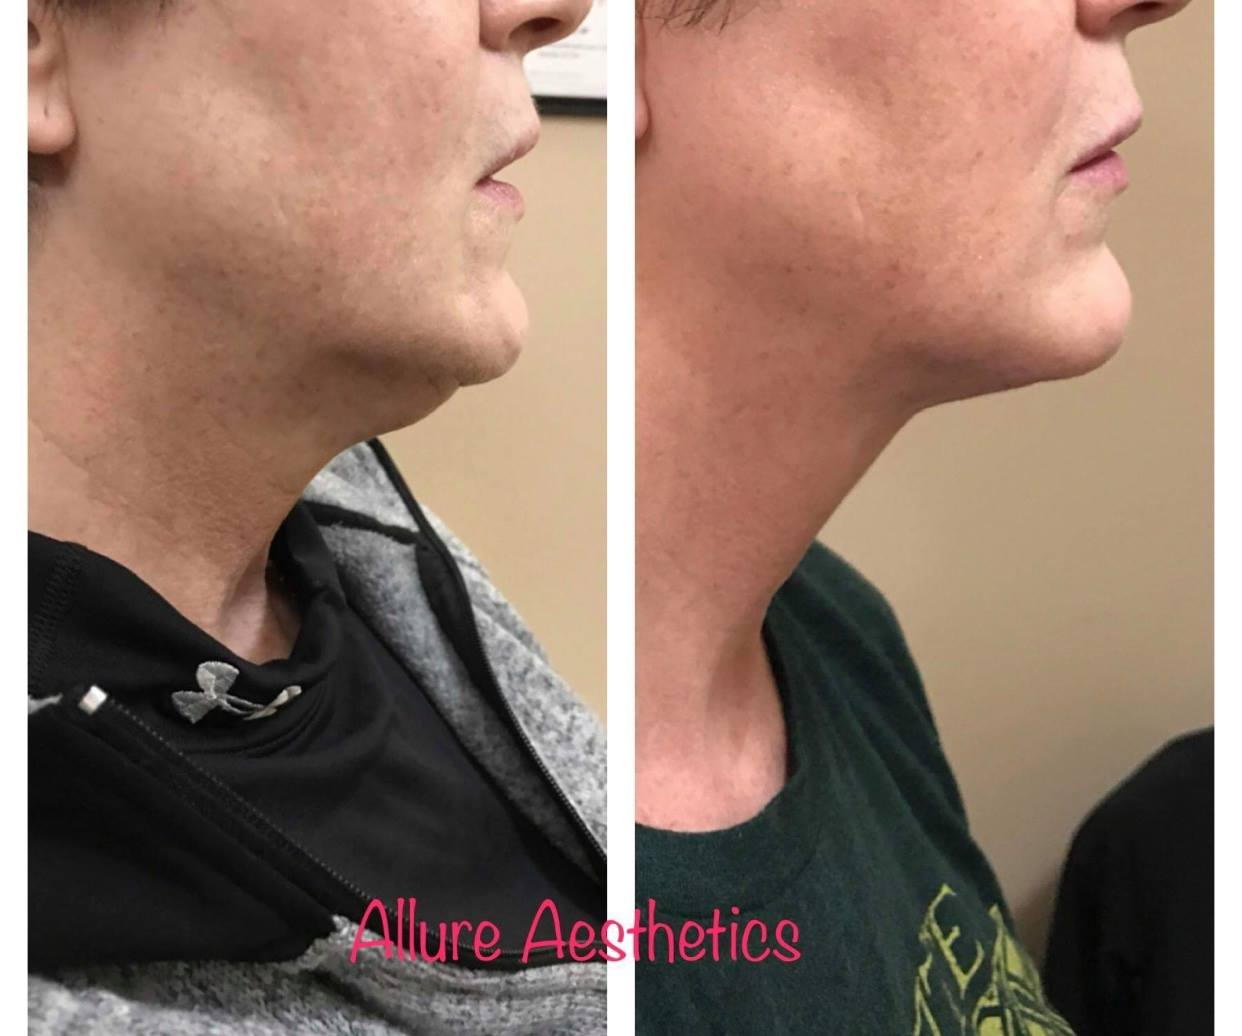 Kybella, 2 Treatments 6 weeks apart